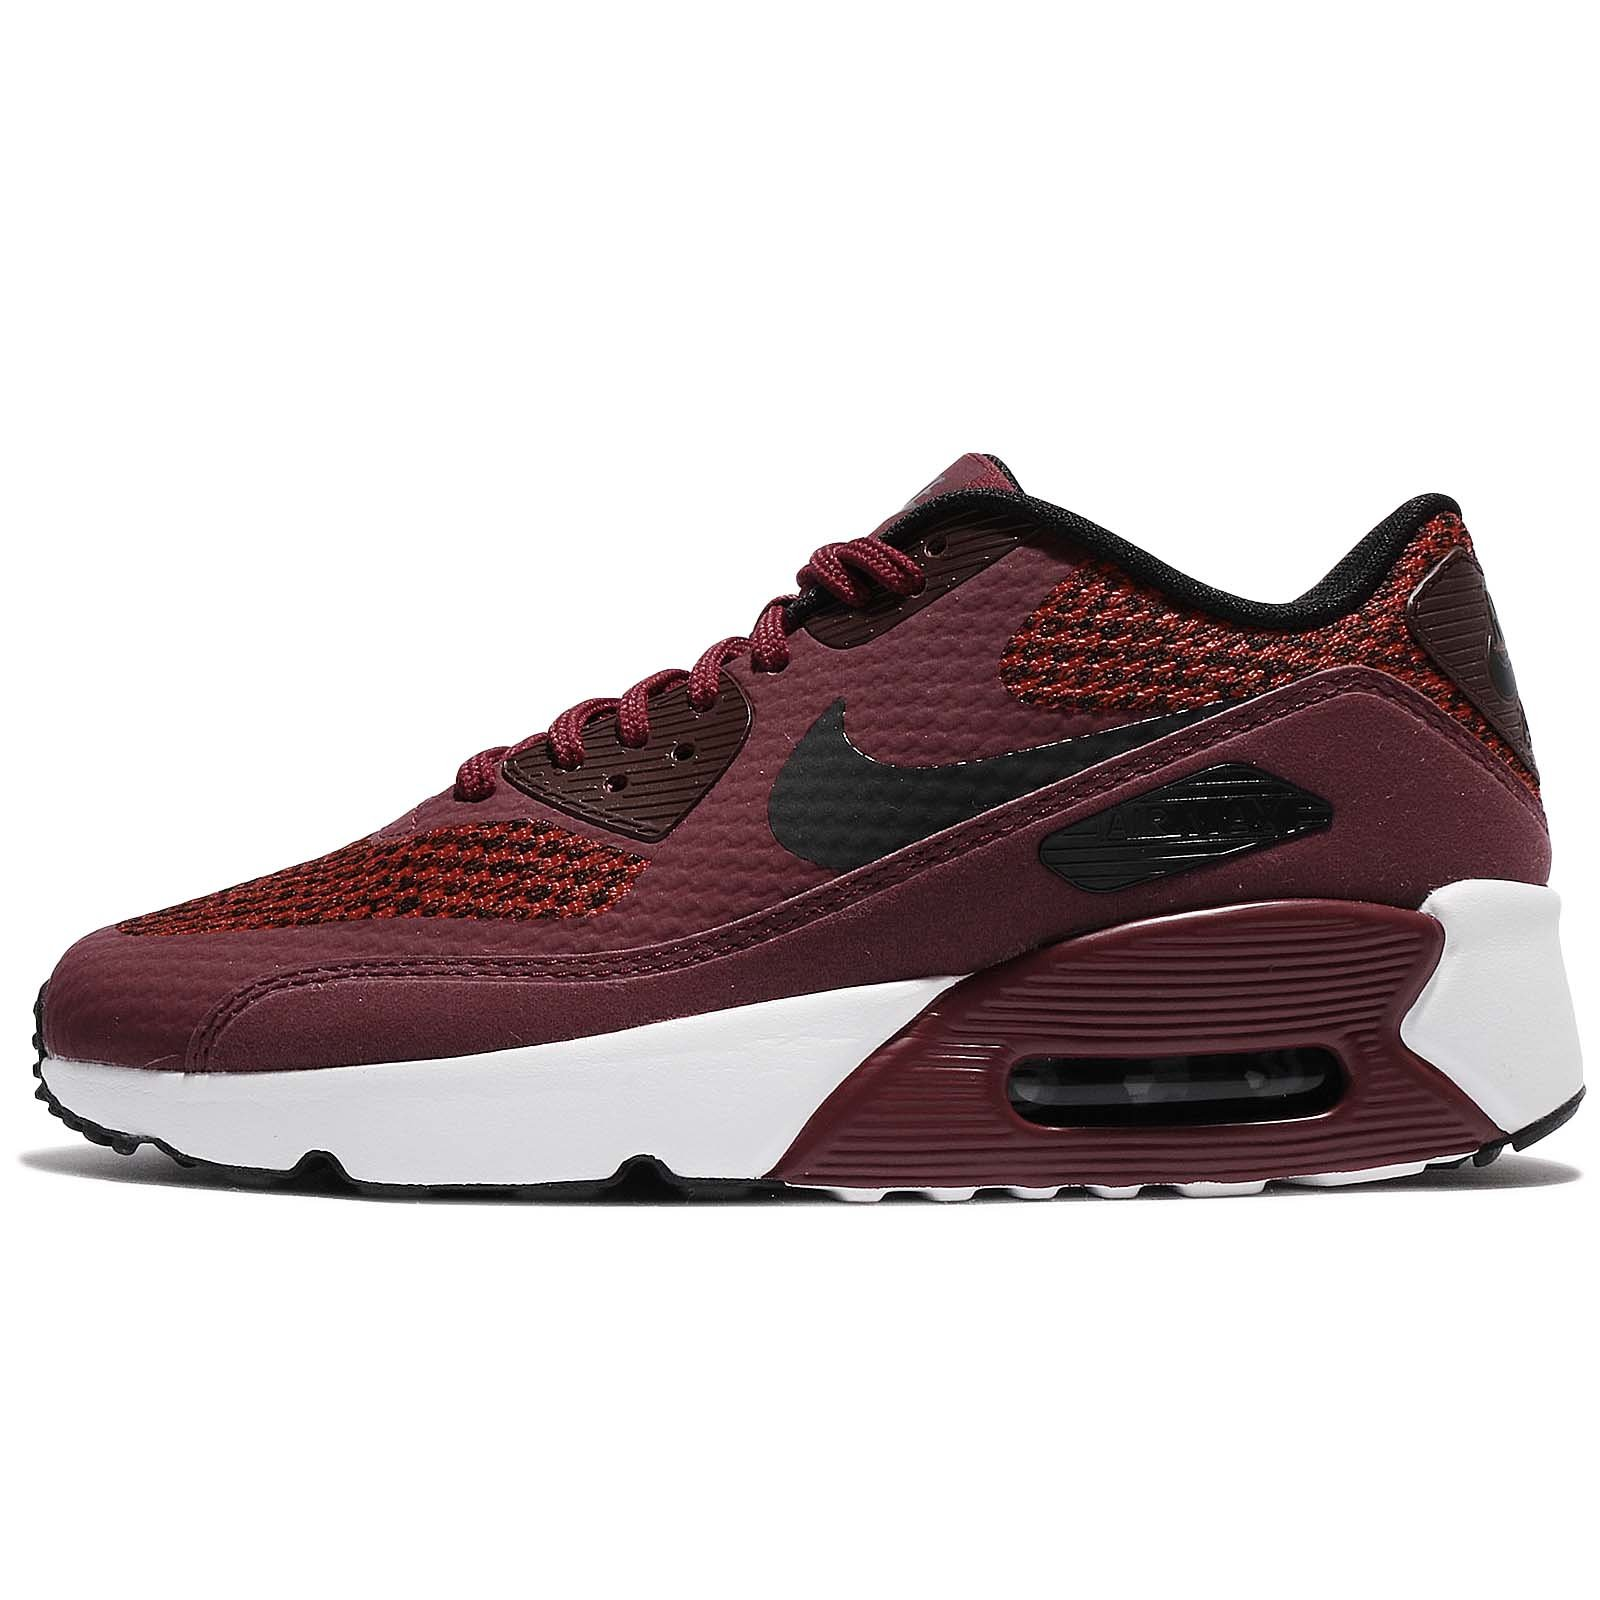 separation shoes 20e67 46ea0 NIKE Air Max 90 Ultra 2.0 SE GS Junior Running Trainers 917988 Sneakers  Shoes (UK 6 US 6.5Y EU 39, Team red Black Dark Grey 600)